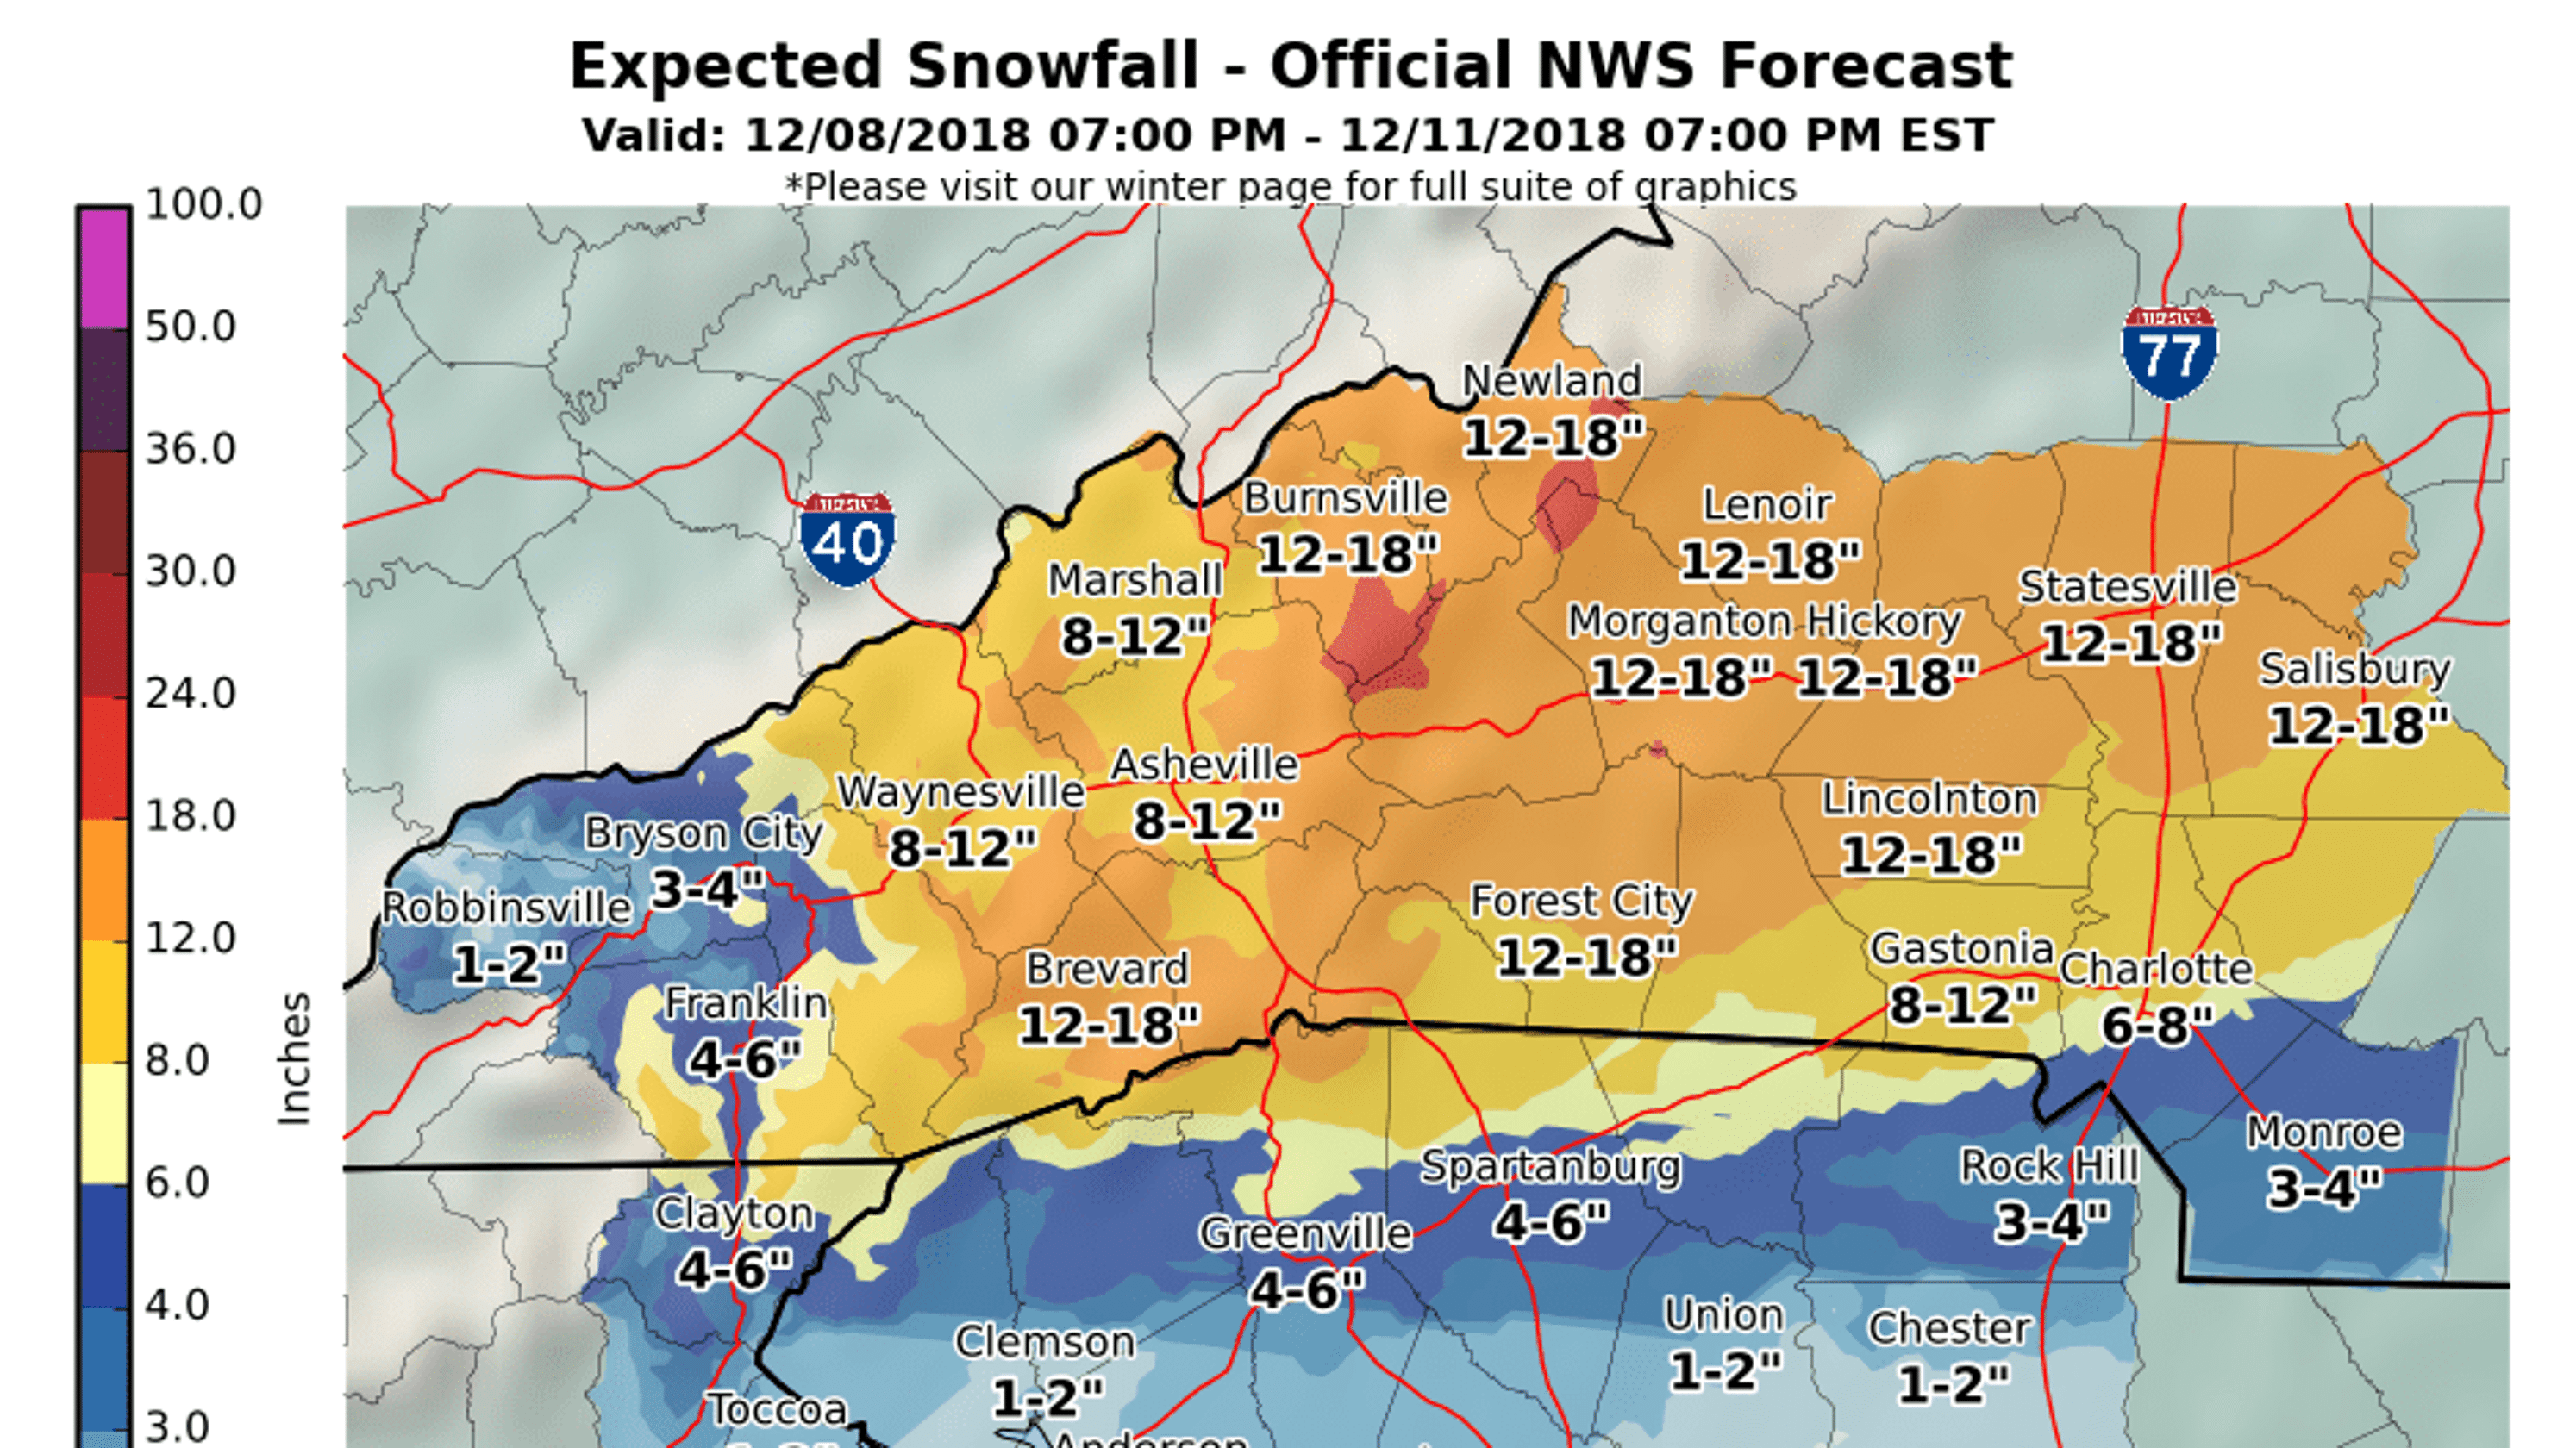 Saay Asheville snow forecast: 'A ton of moisture' on map of wingate university, map of lenoir city, map of matthews, map of buncombe county, map of brookings, map of beatrice, map of kenansville, map of otto, map of great smoky mountain railroad, map of chimney rock state park, map of whiteville, map of burgaw, map of easley, map of shaw university, map of north palm beach county, map of eatonton, map of cornelia, map of carlinville, map of kernersville, map of north carolina,